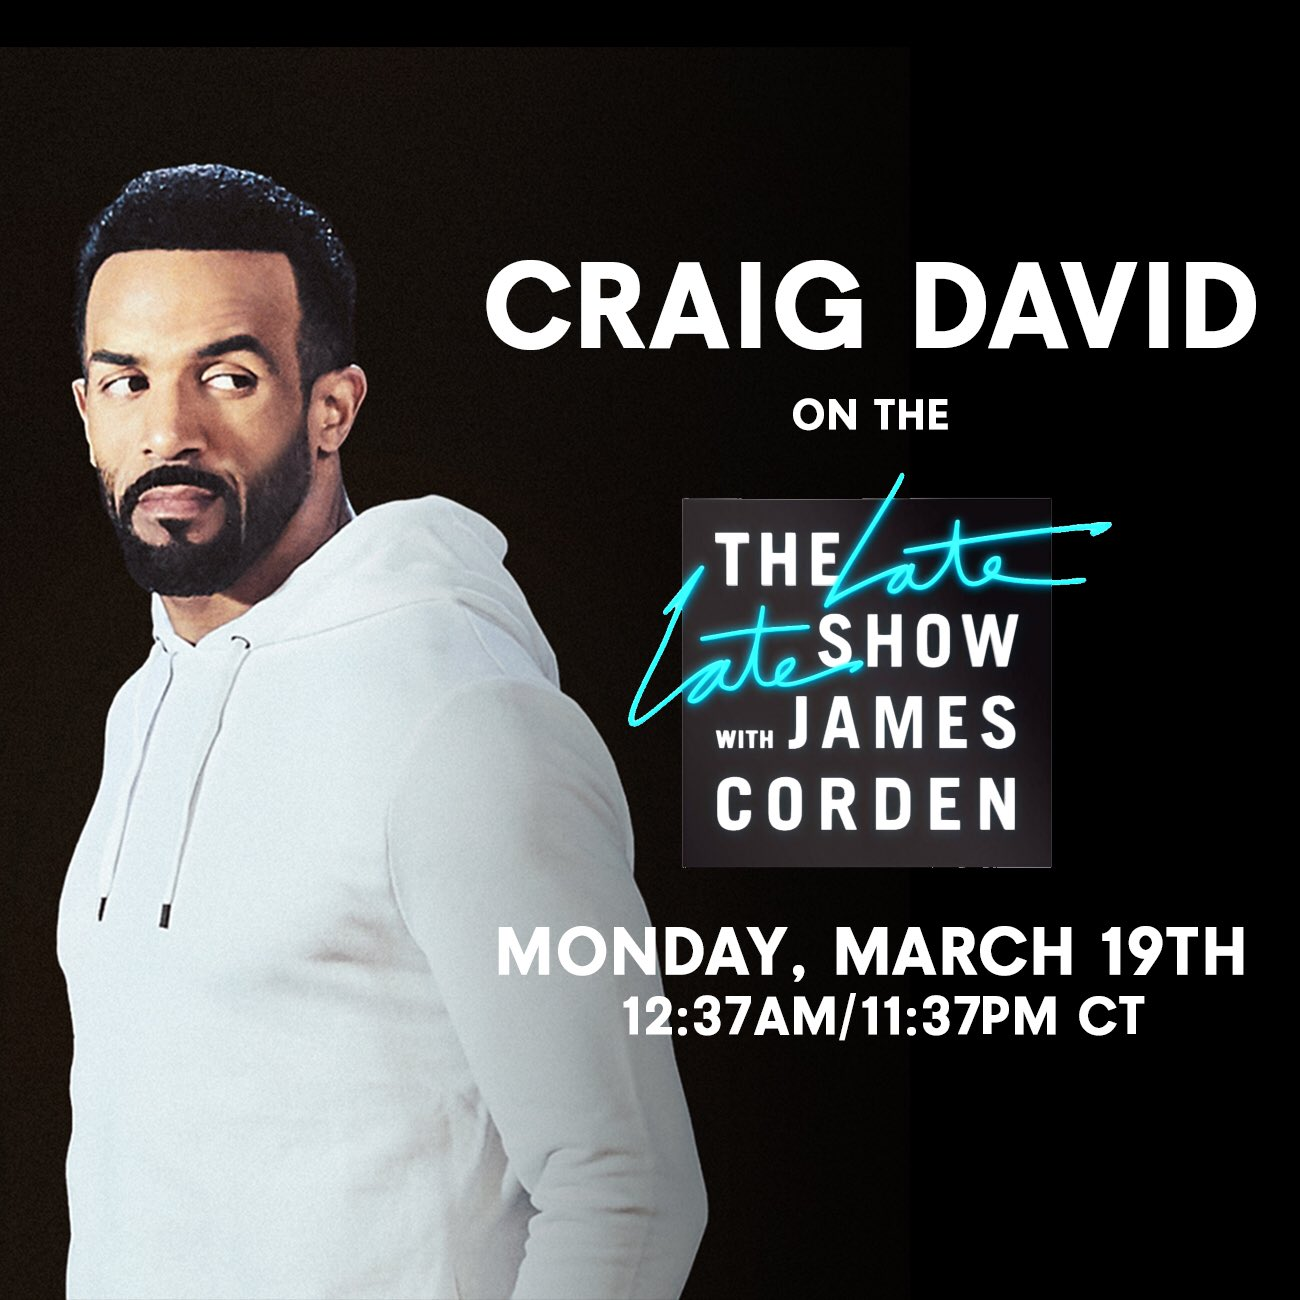 🔥🔥 I'll be performing my single 'I Know You' on the @latelateshow next Monday 👀✨👏🏽 #TheTimeIsNOW 🕗 https://t.co/JujuZHIYYR